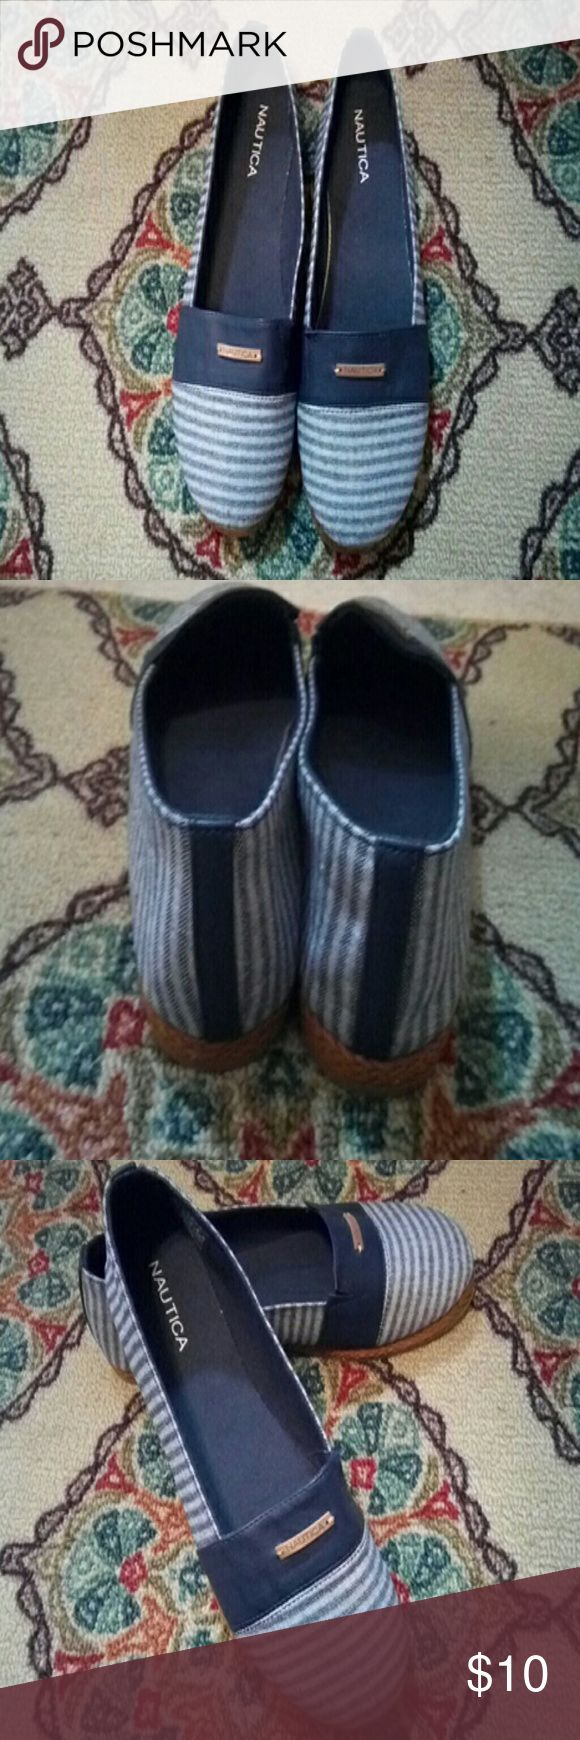 Shoes Let's go boating! Women's Nautica slippers, size 10 Navy and light blue stripe. Nautica Shoes Espadrilles